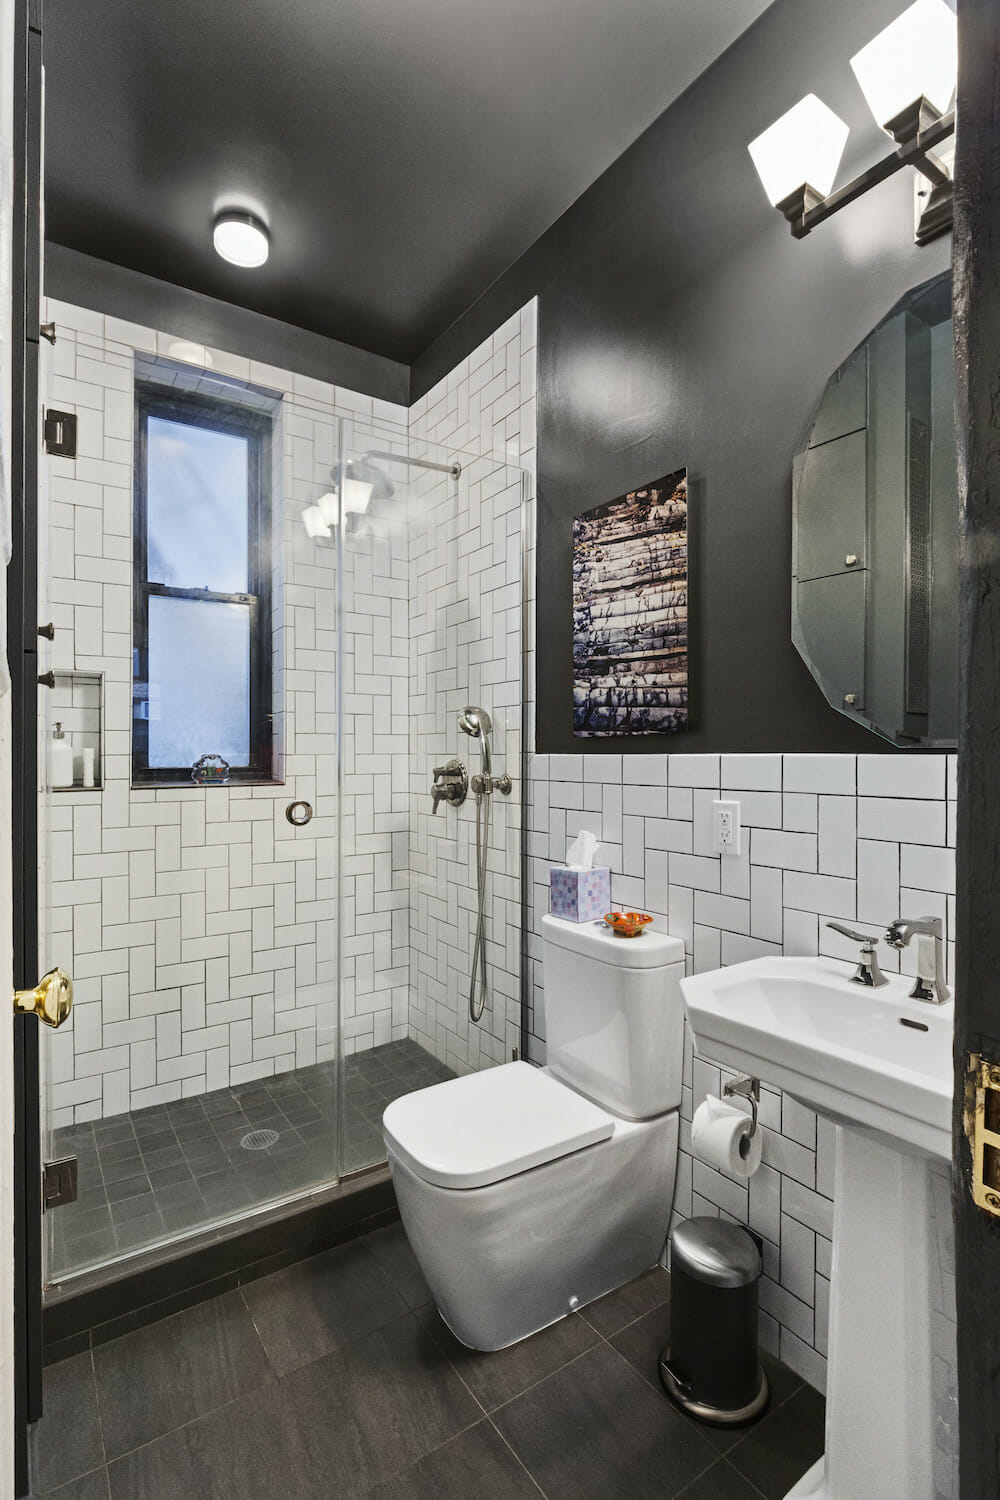 Image of a bathroom with white subway tile in a herringbone pattern